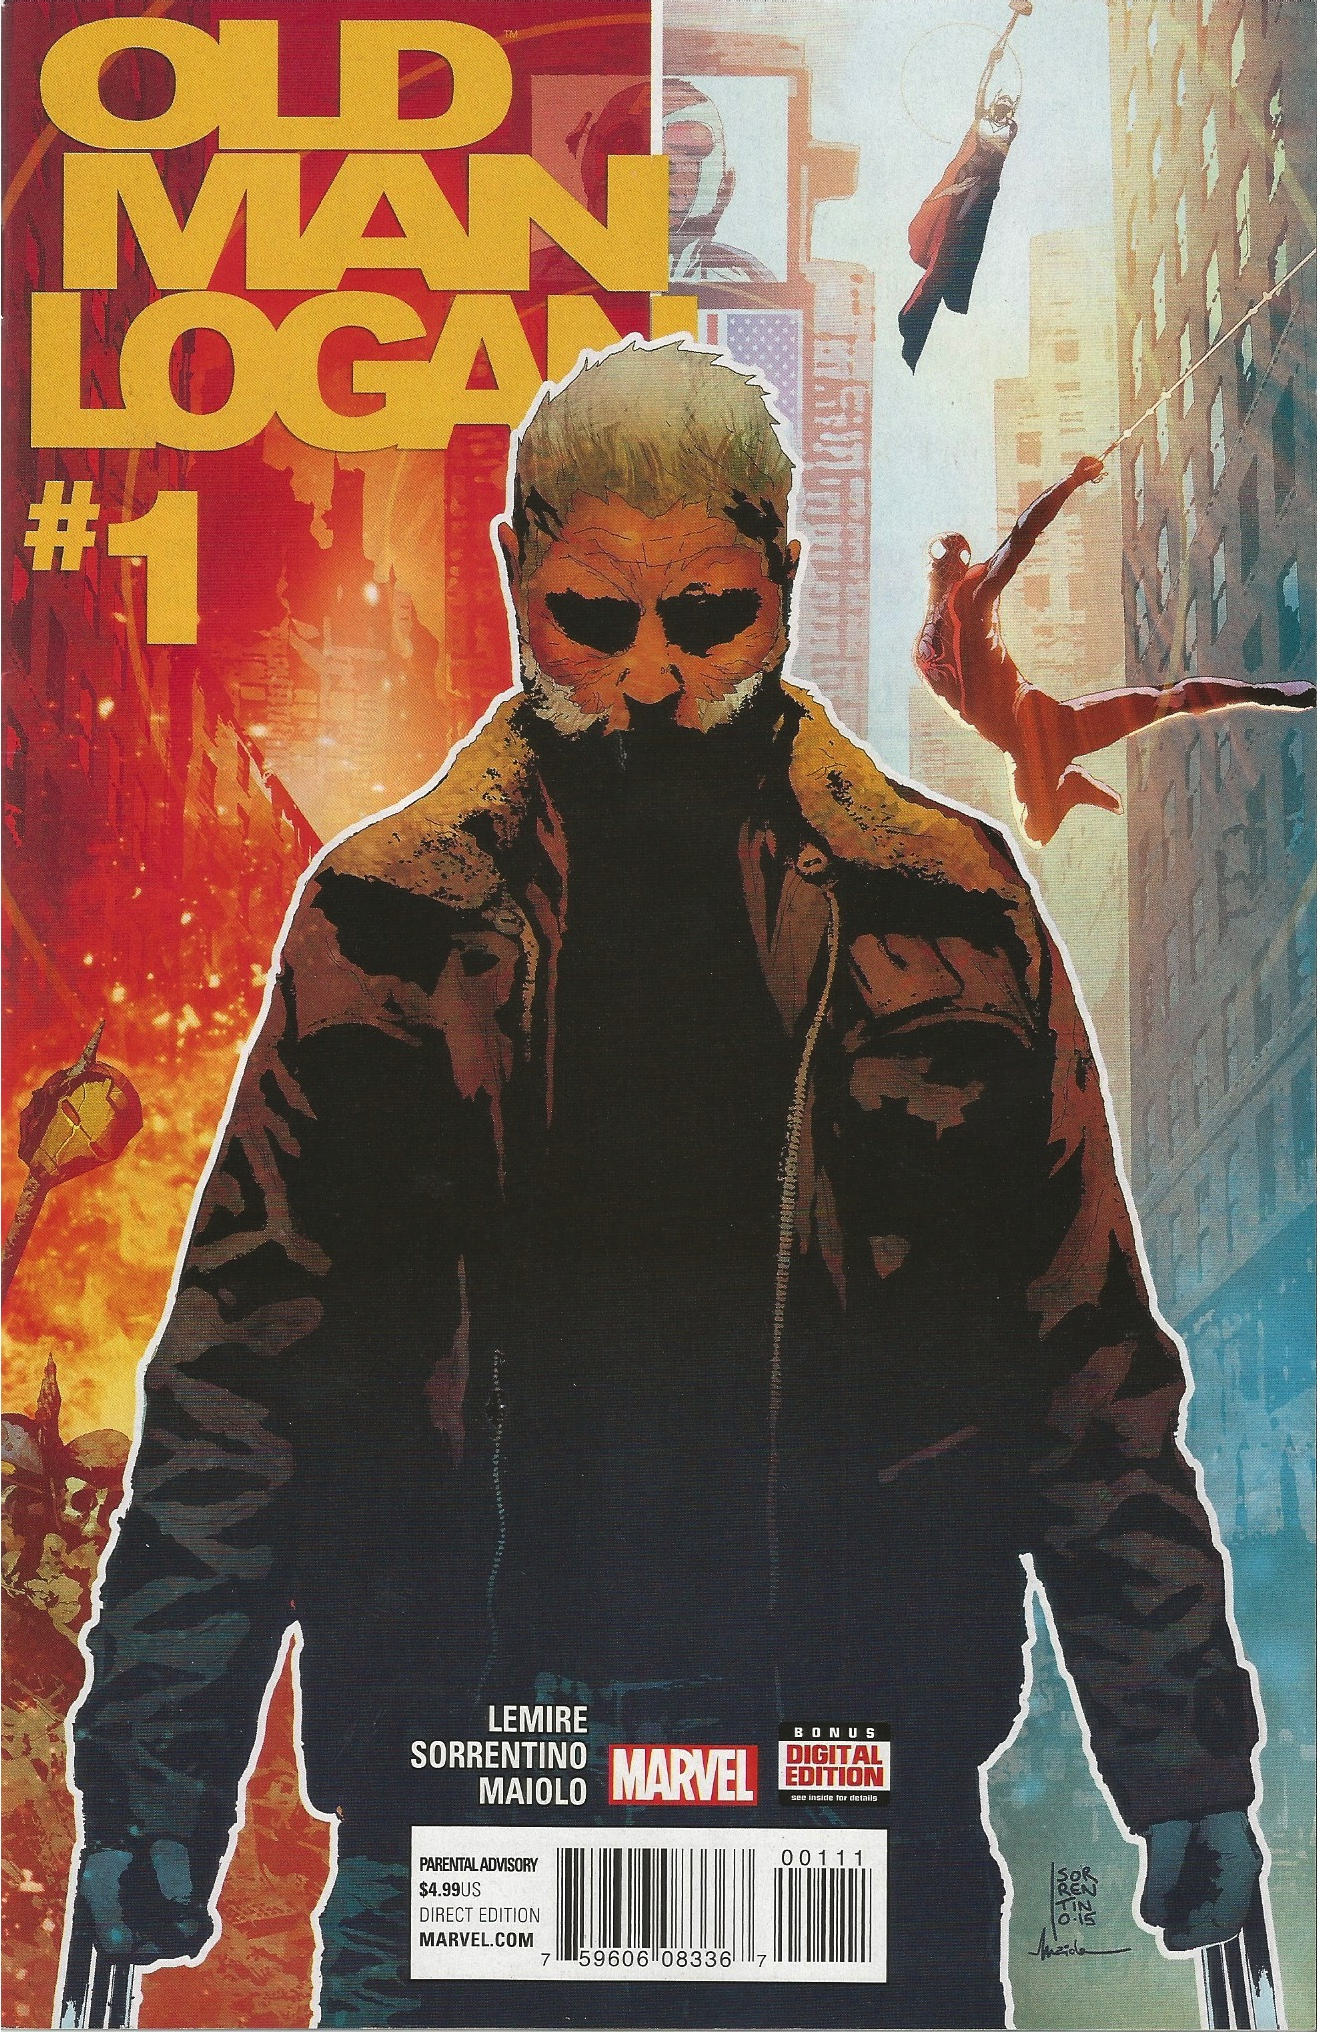 COMIC REVIEW: Old Man Logan #1 - Berserker